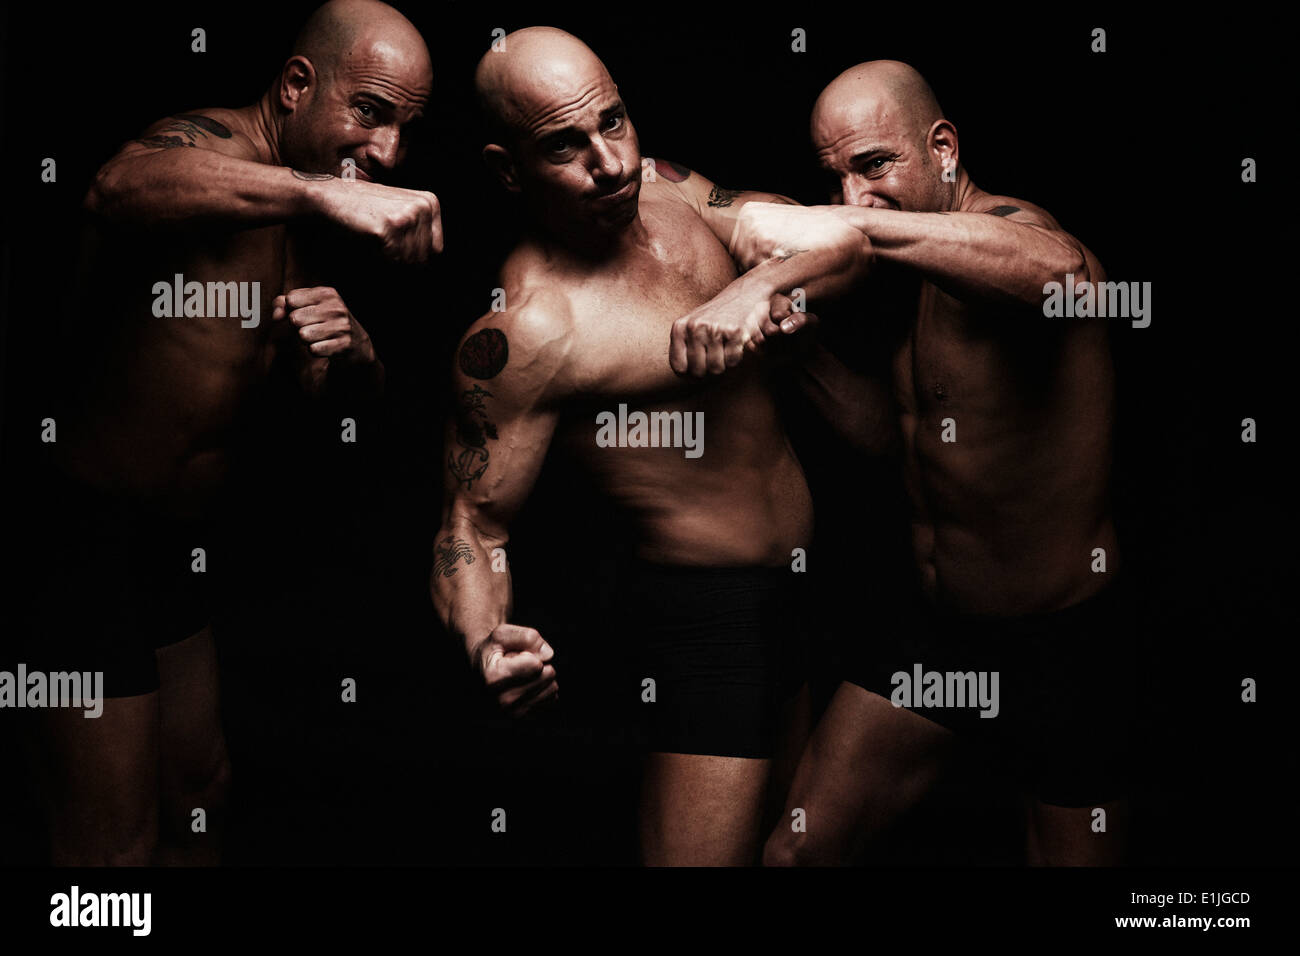 Mature man fighting, composite image - Stock Image